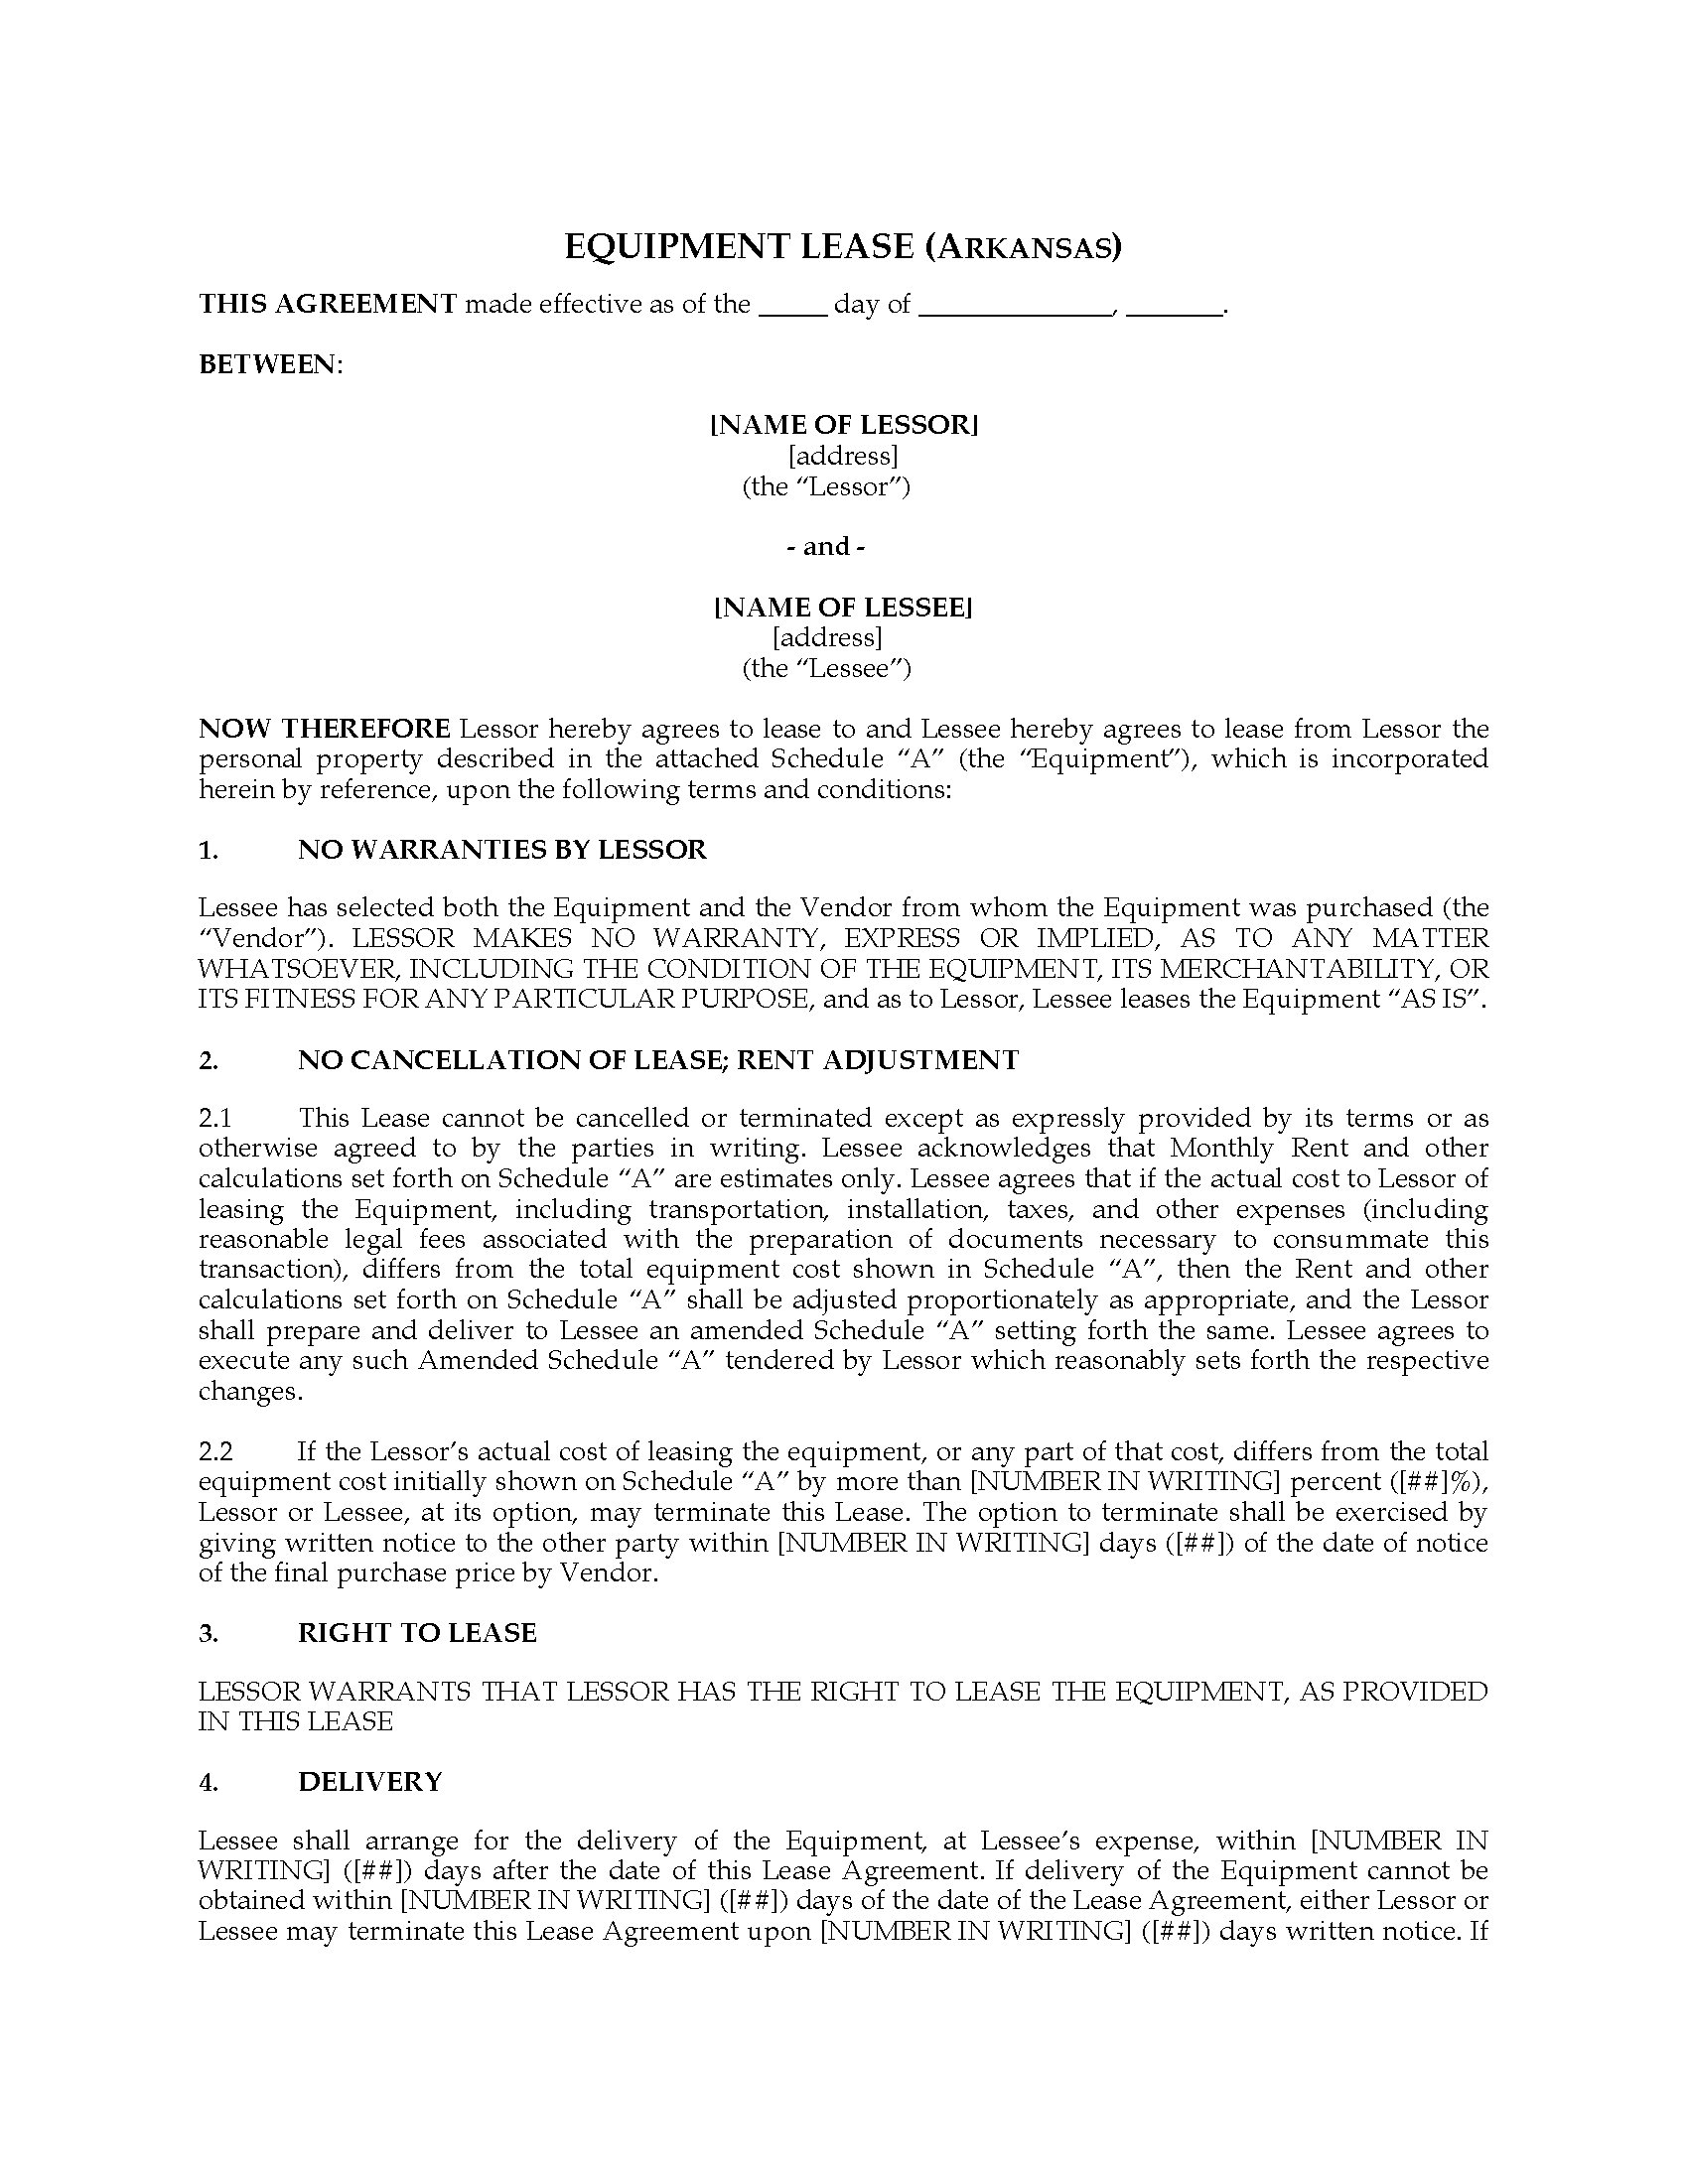 Arkansas Equipment Lease Agreement Legal Forms And Business